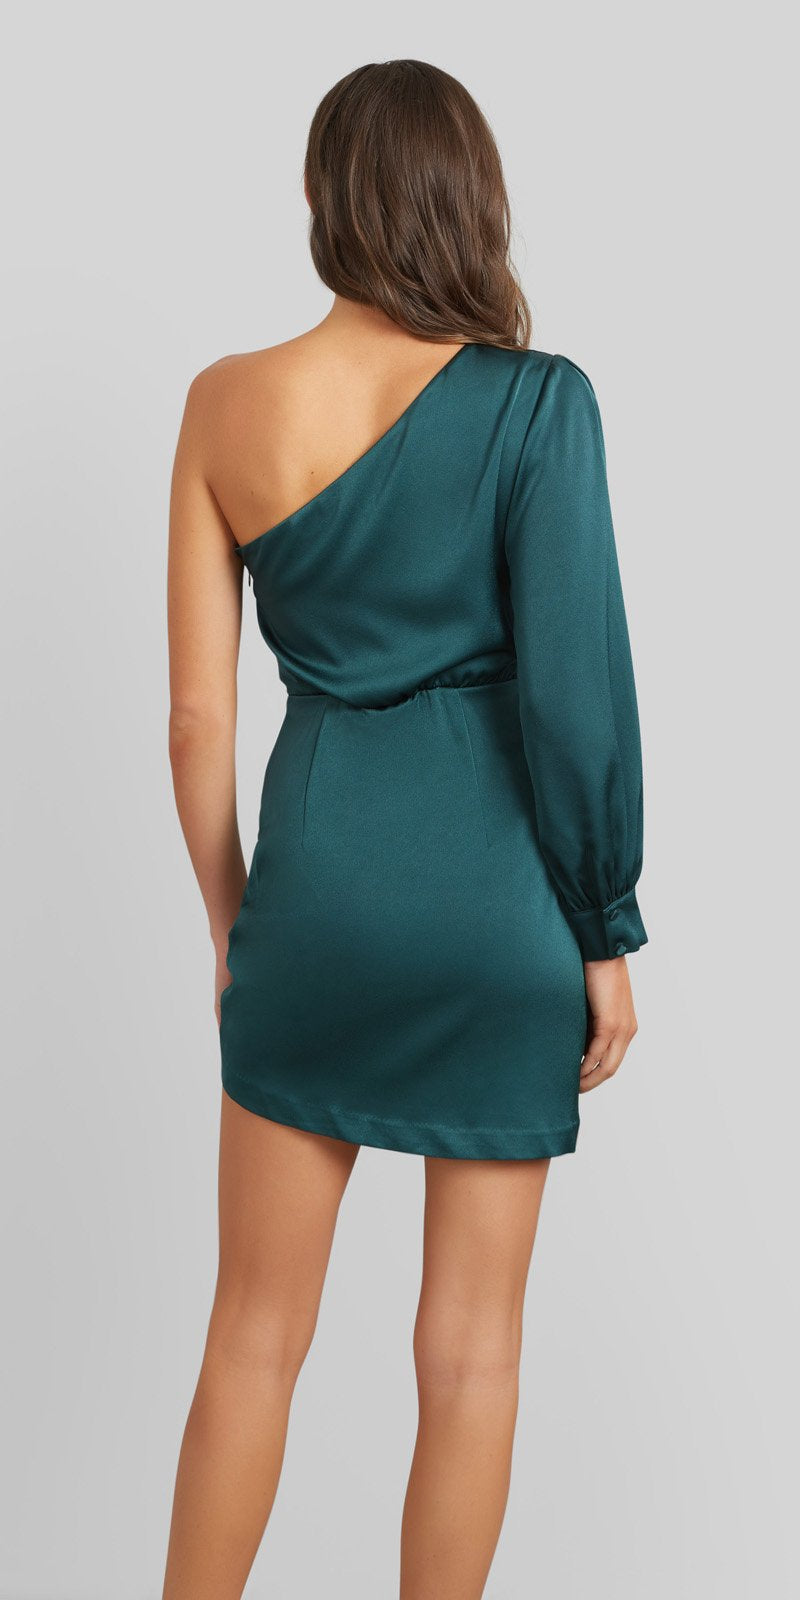 Kookai Vangeline Dress - Pine - Dress Hire NZ